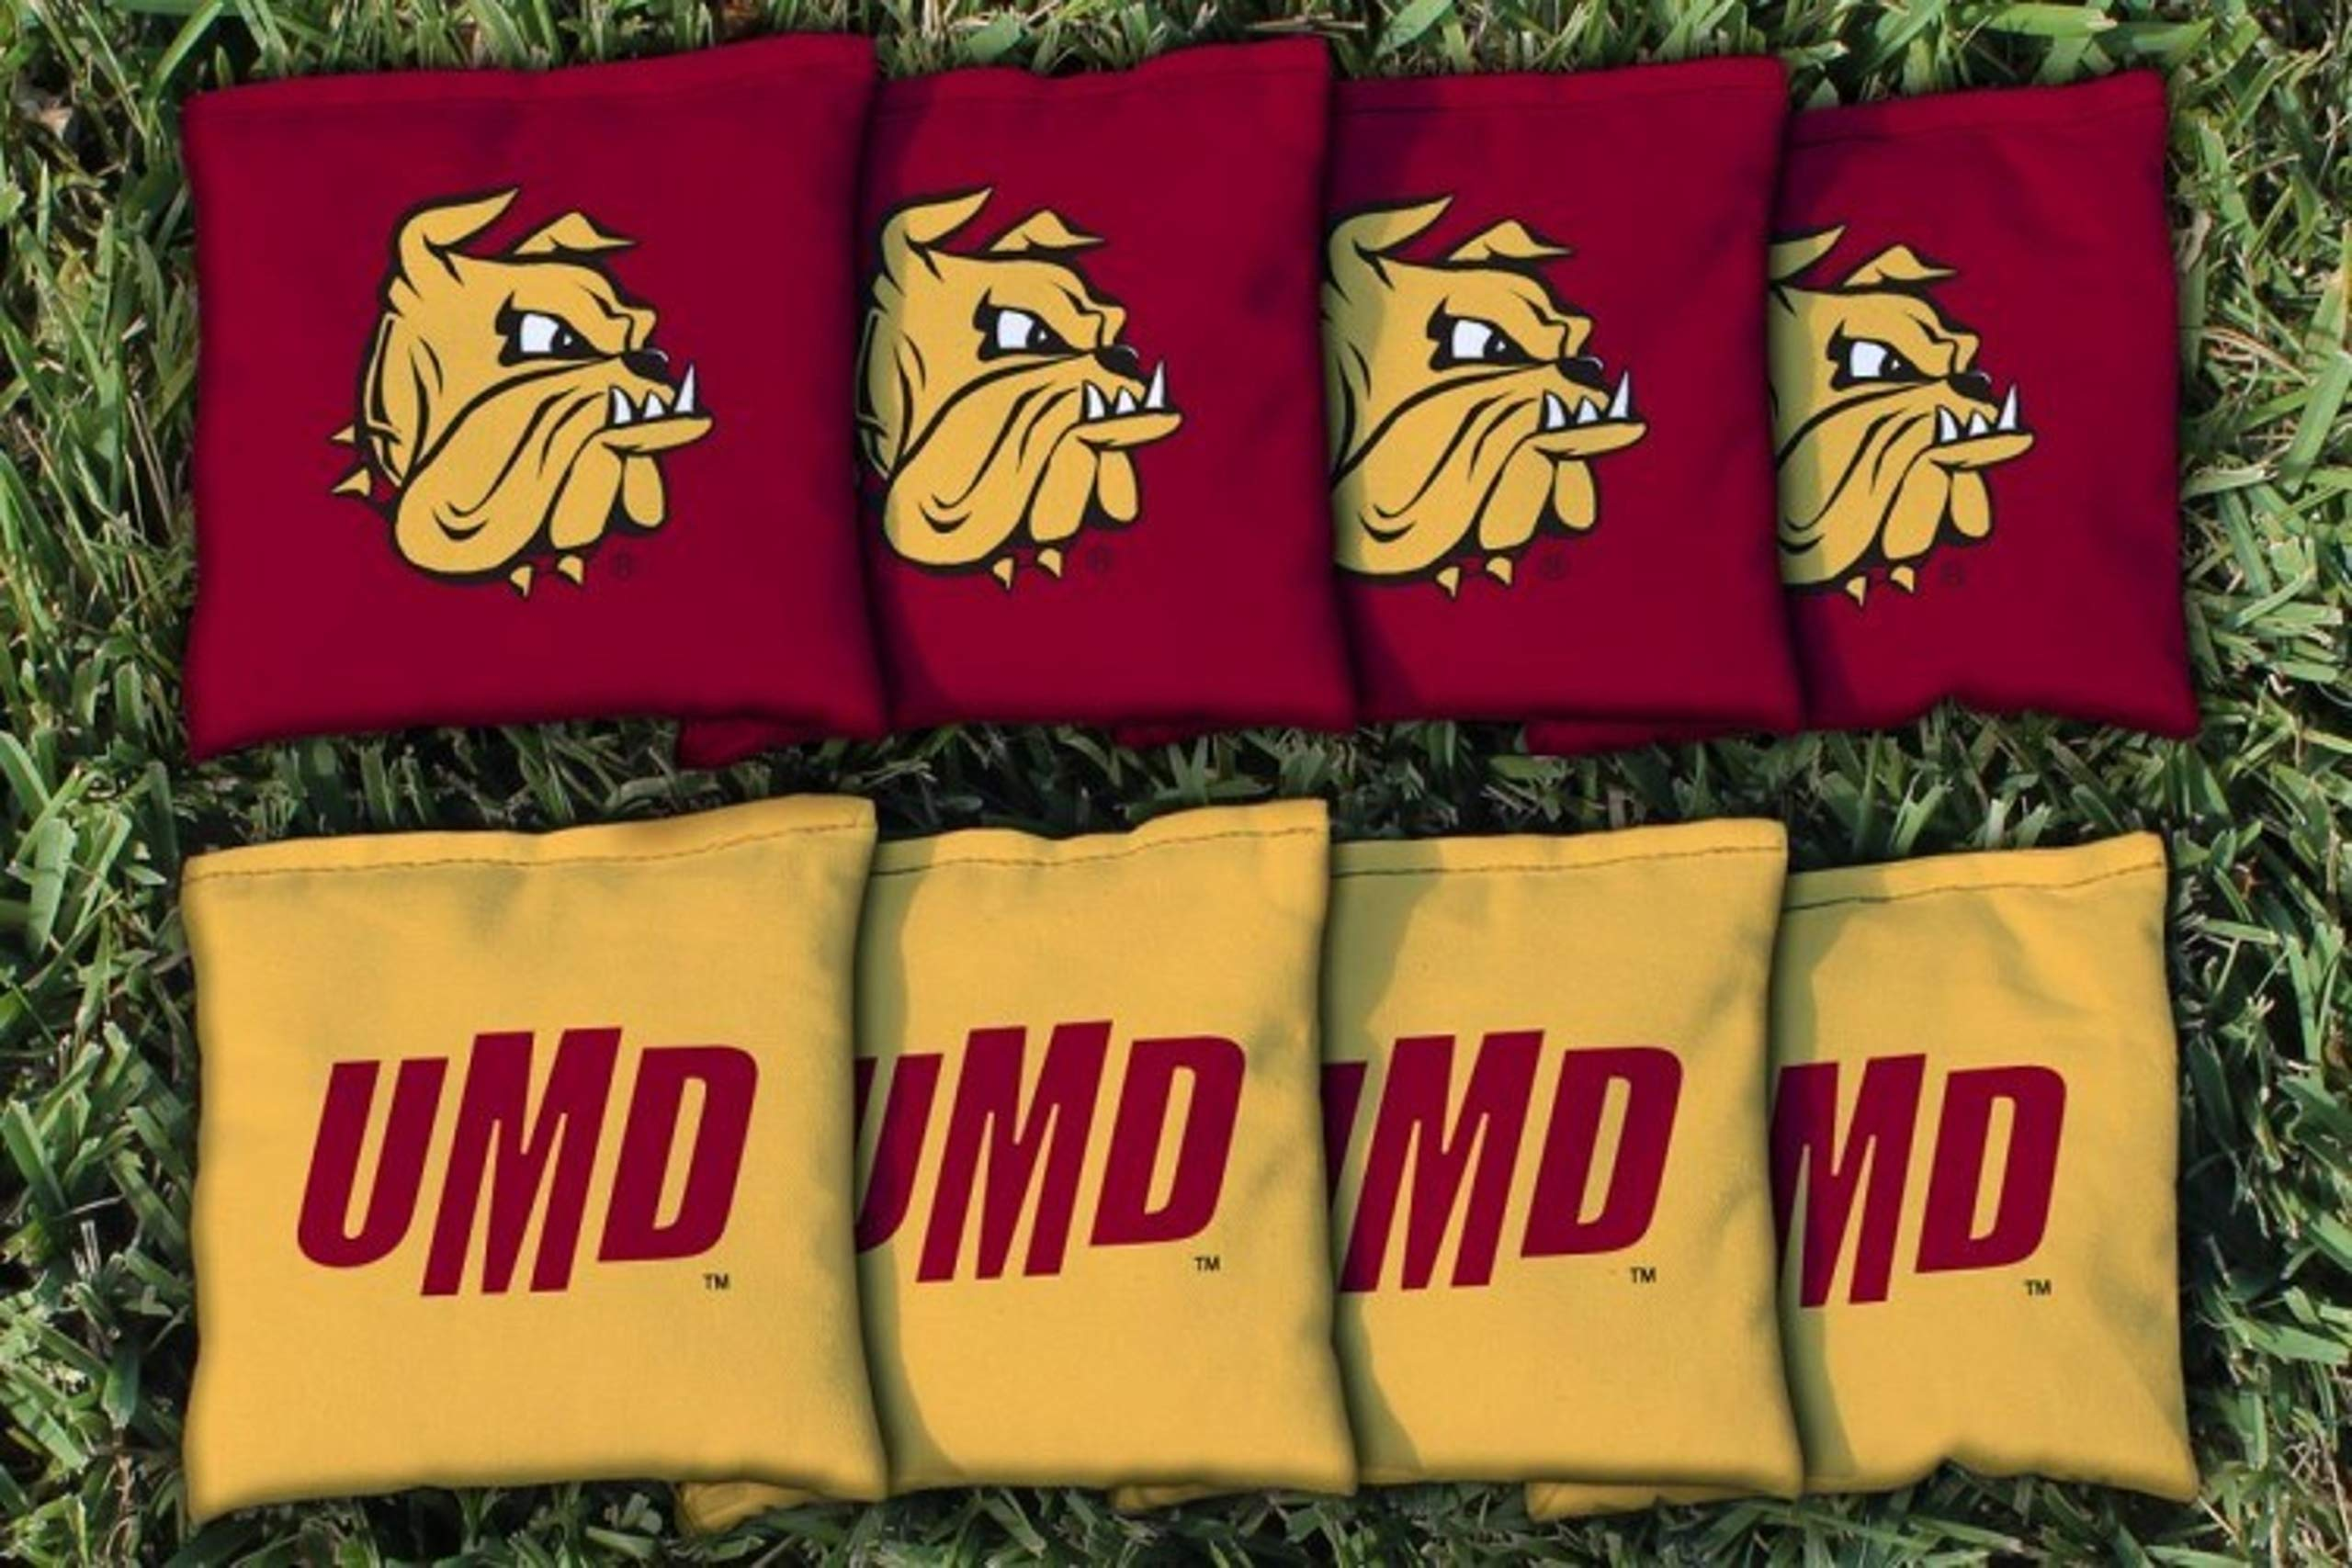 Victory Tailgate NCAA Collegiate Regulation Cornhole Game Bag Set (8 Bags Included, Corn-Filled) - Minnesota Duluth Bulldogs by Victory Tailgate